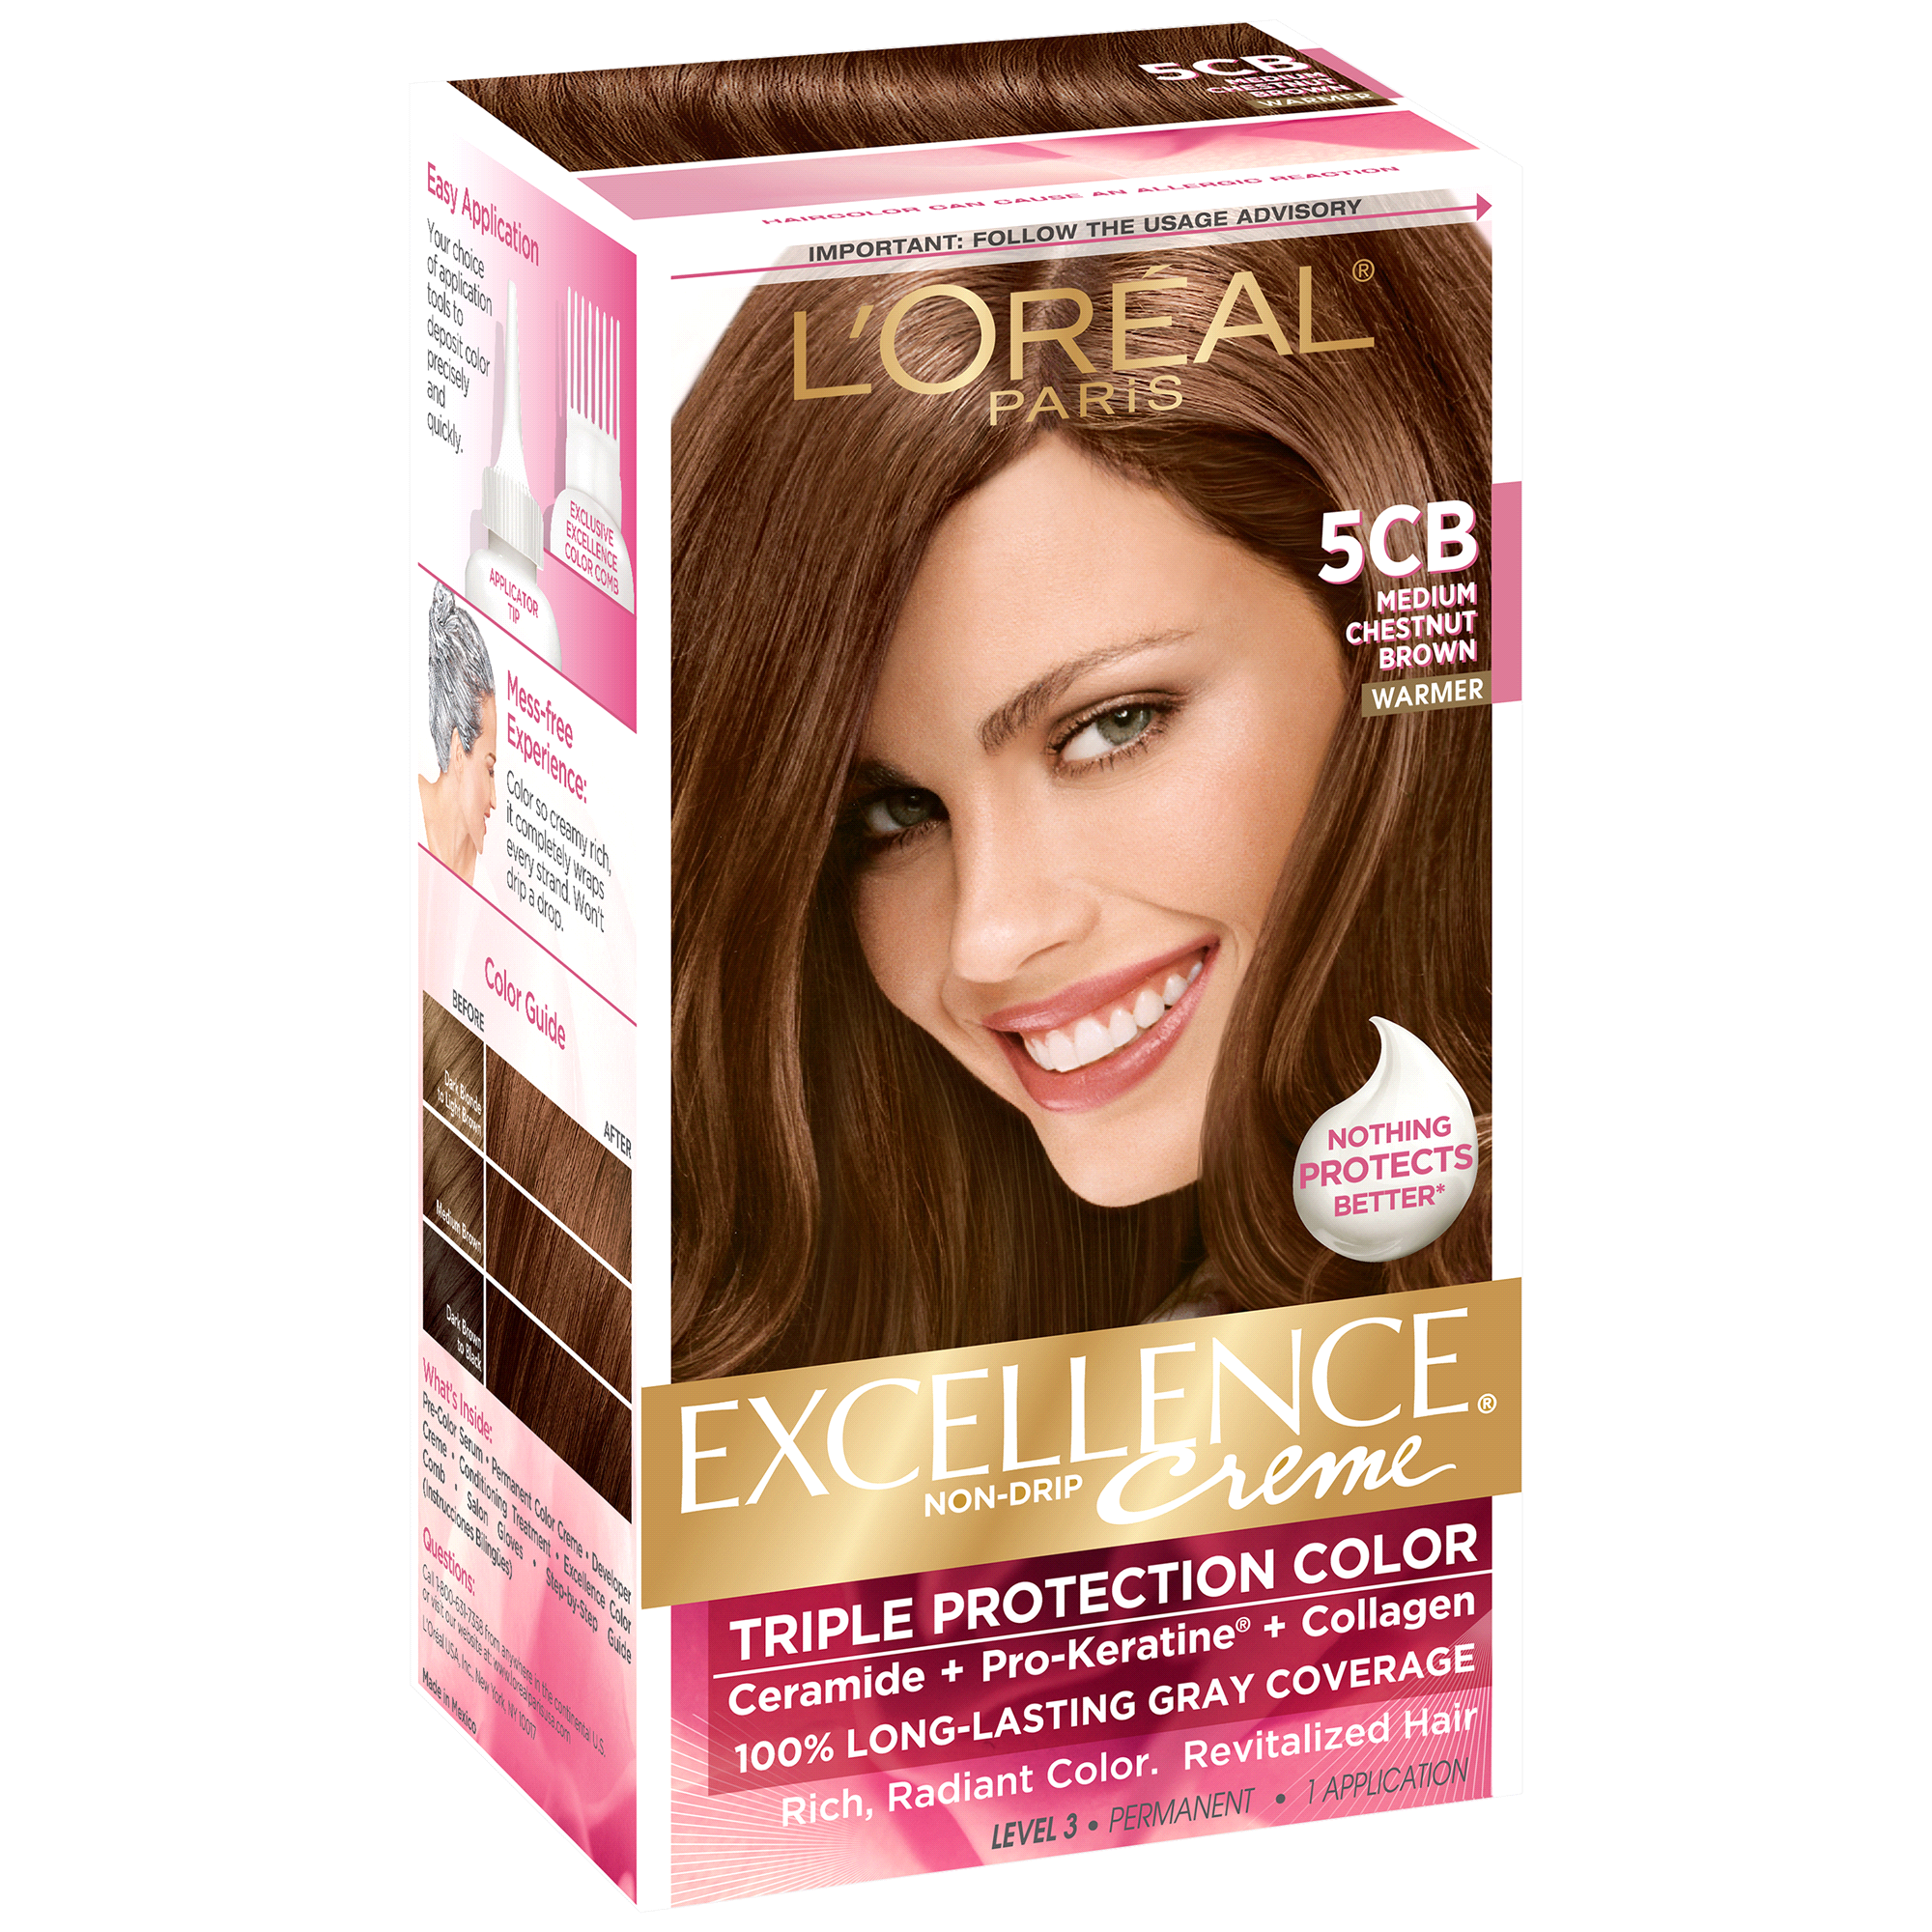 Loreal Paris Excellence Non Drip Crme Triple Protection Color 5cb